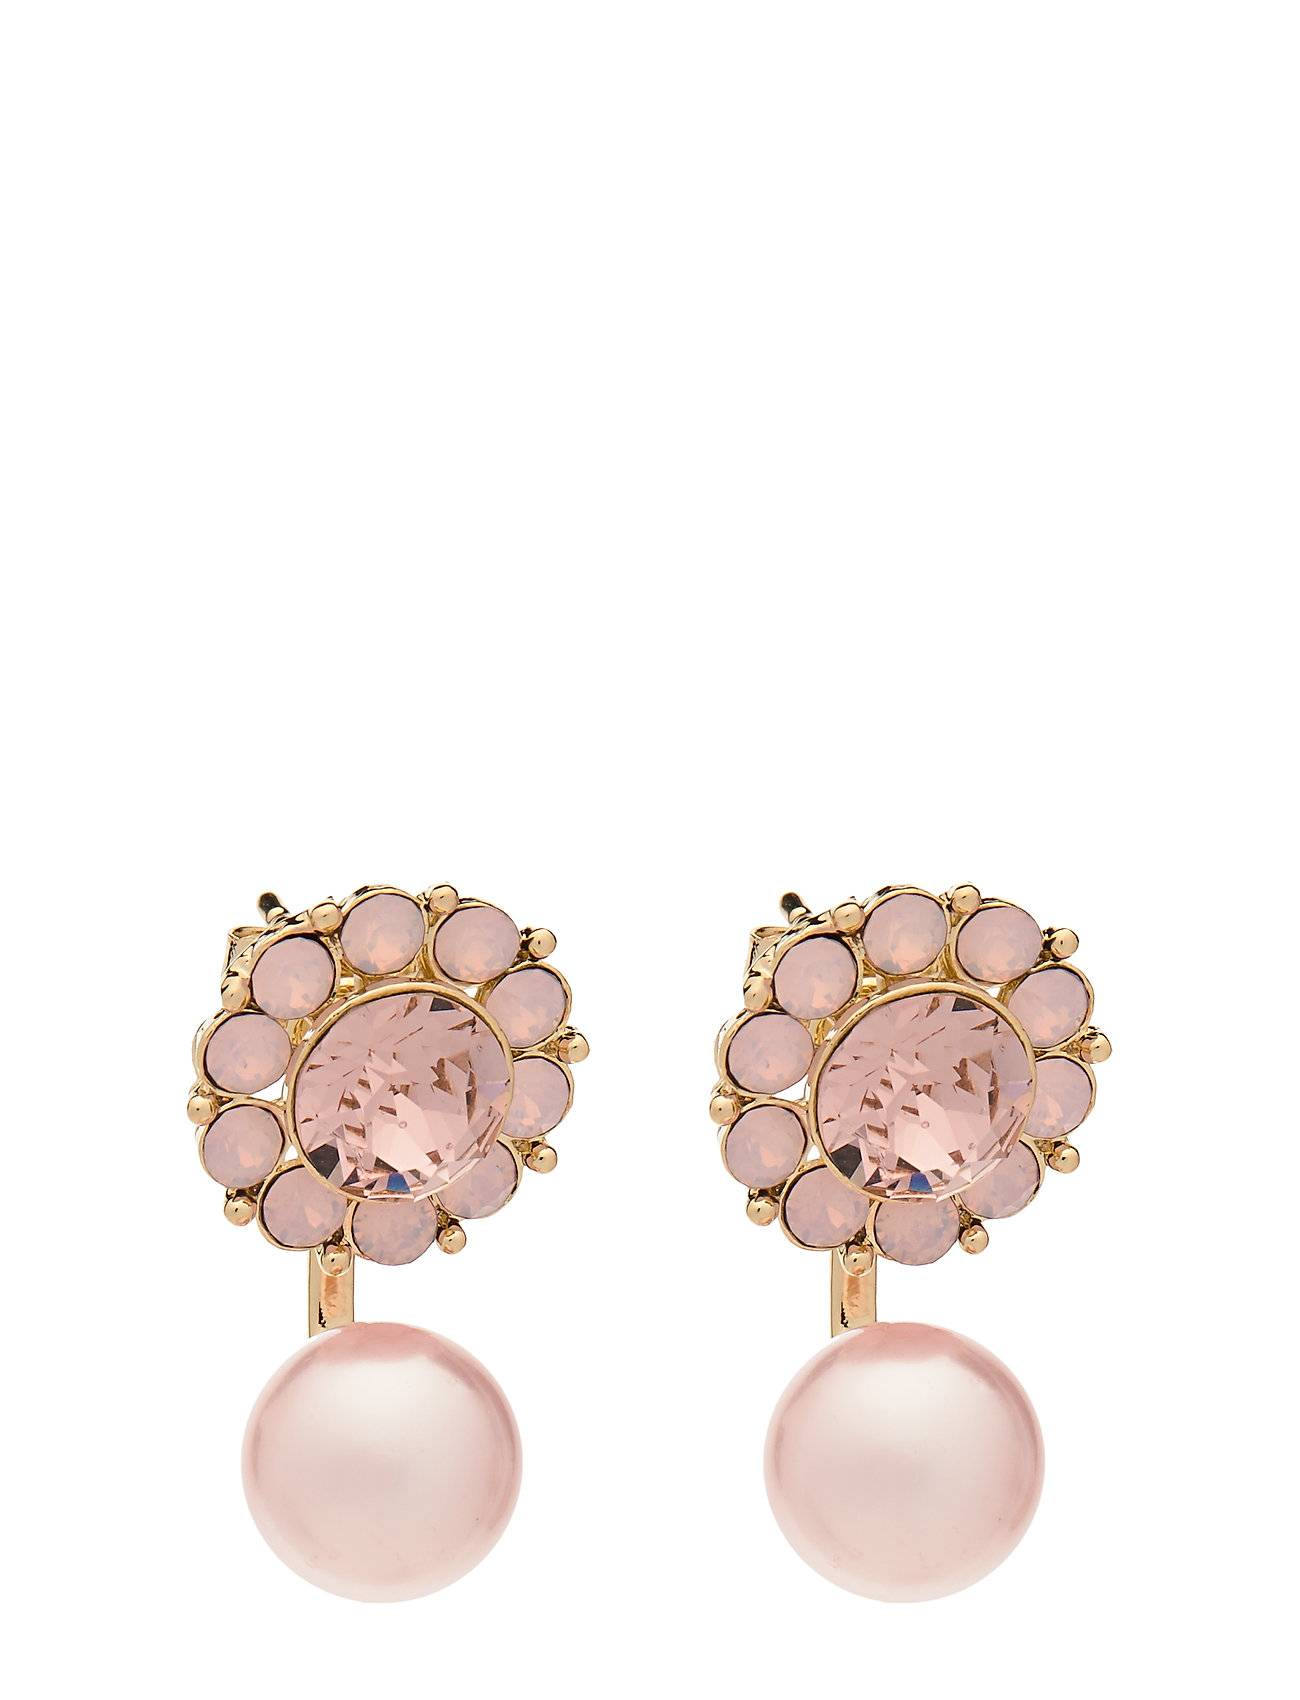 LILY AND ROSE Miss Sofia Butterfly Earrings - Vintage Rose Opal Accessories Jewellery Earrings Studs Vaaleanpunainen LILY AND ROSE